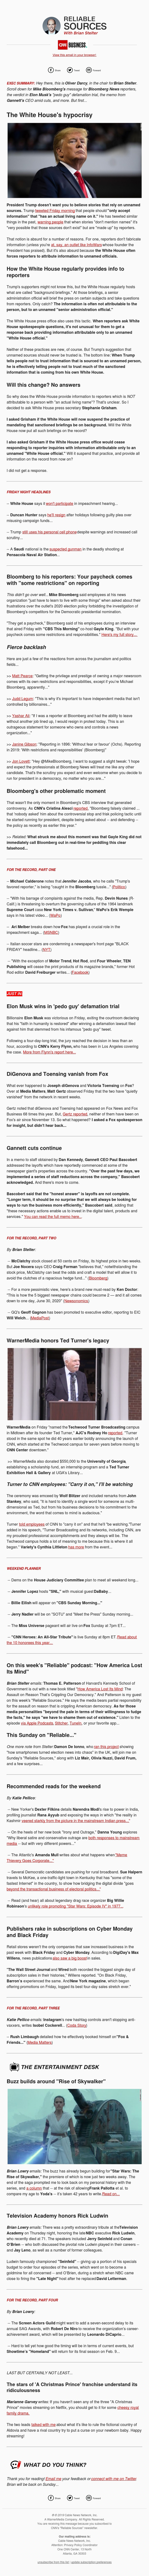 White House hypocrisy; Bloomberg backlash; Elon Musk victorious; Gannett CEO addresses cuts; WarnerMedia honors Ted Turner; 'Rise of Skywalker' buzz